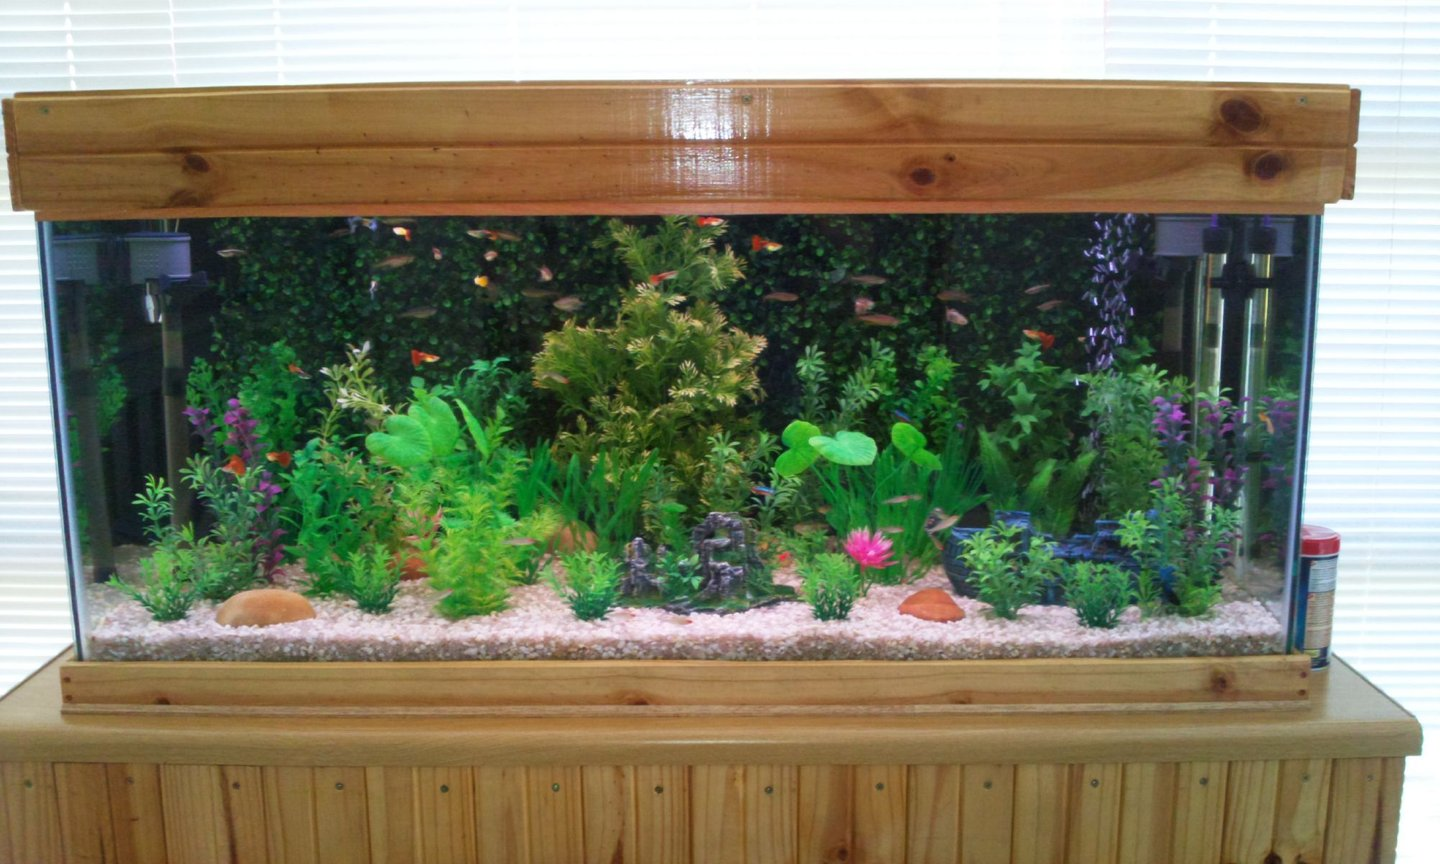 65 gallons planted tank (mostly live plants and fish) - The front view of my tank.